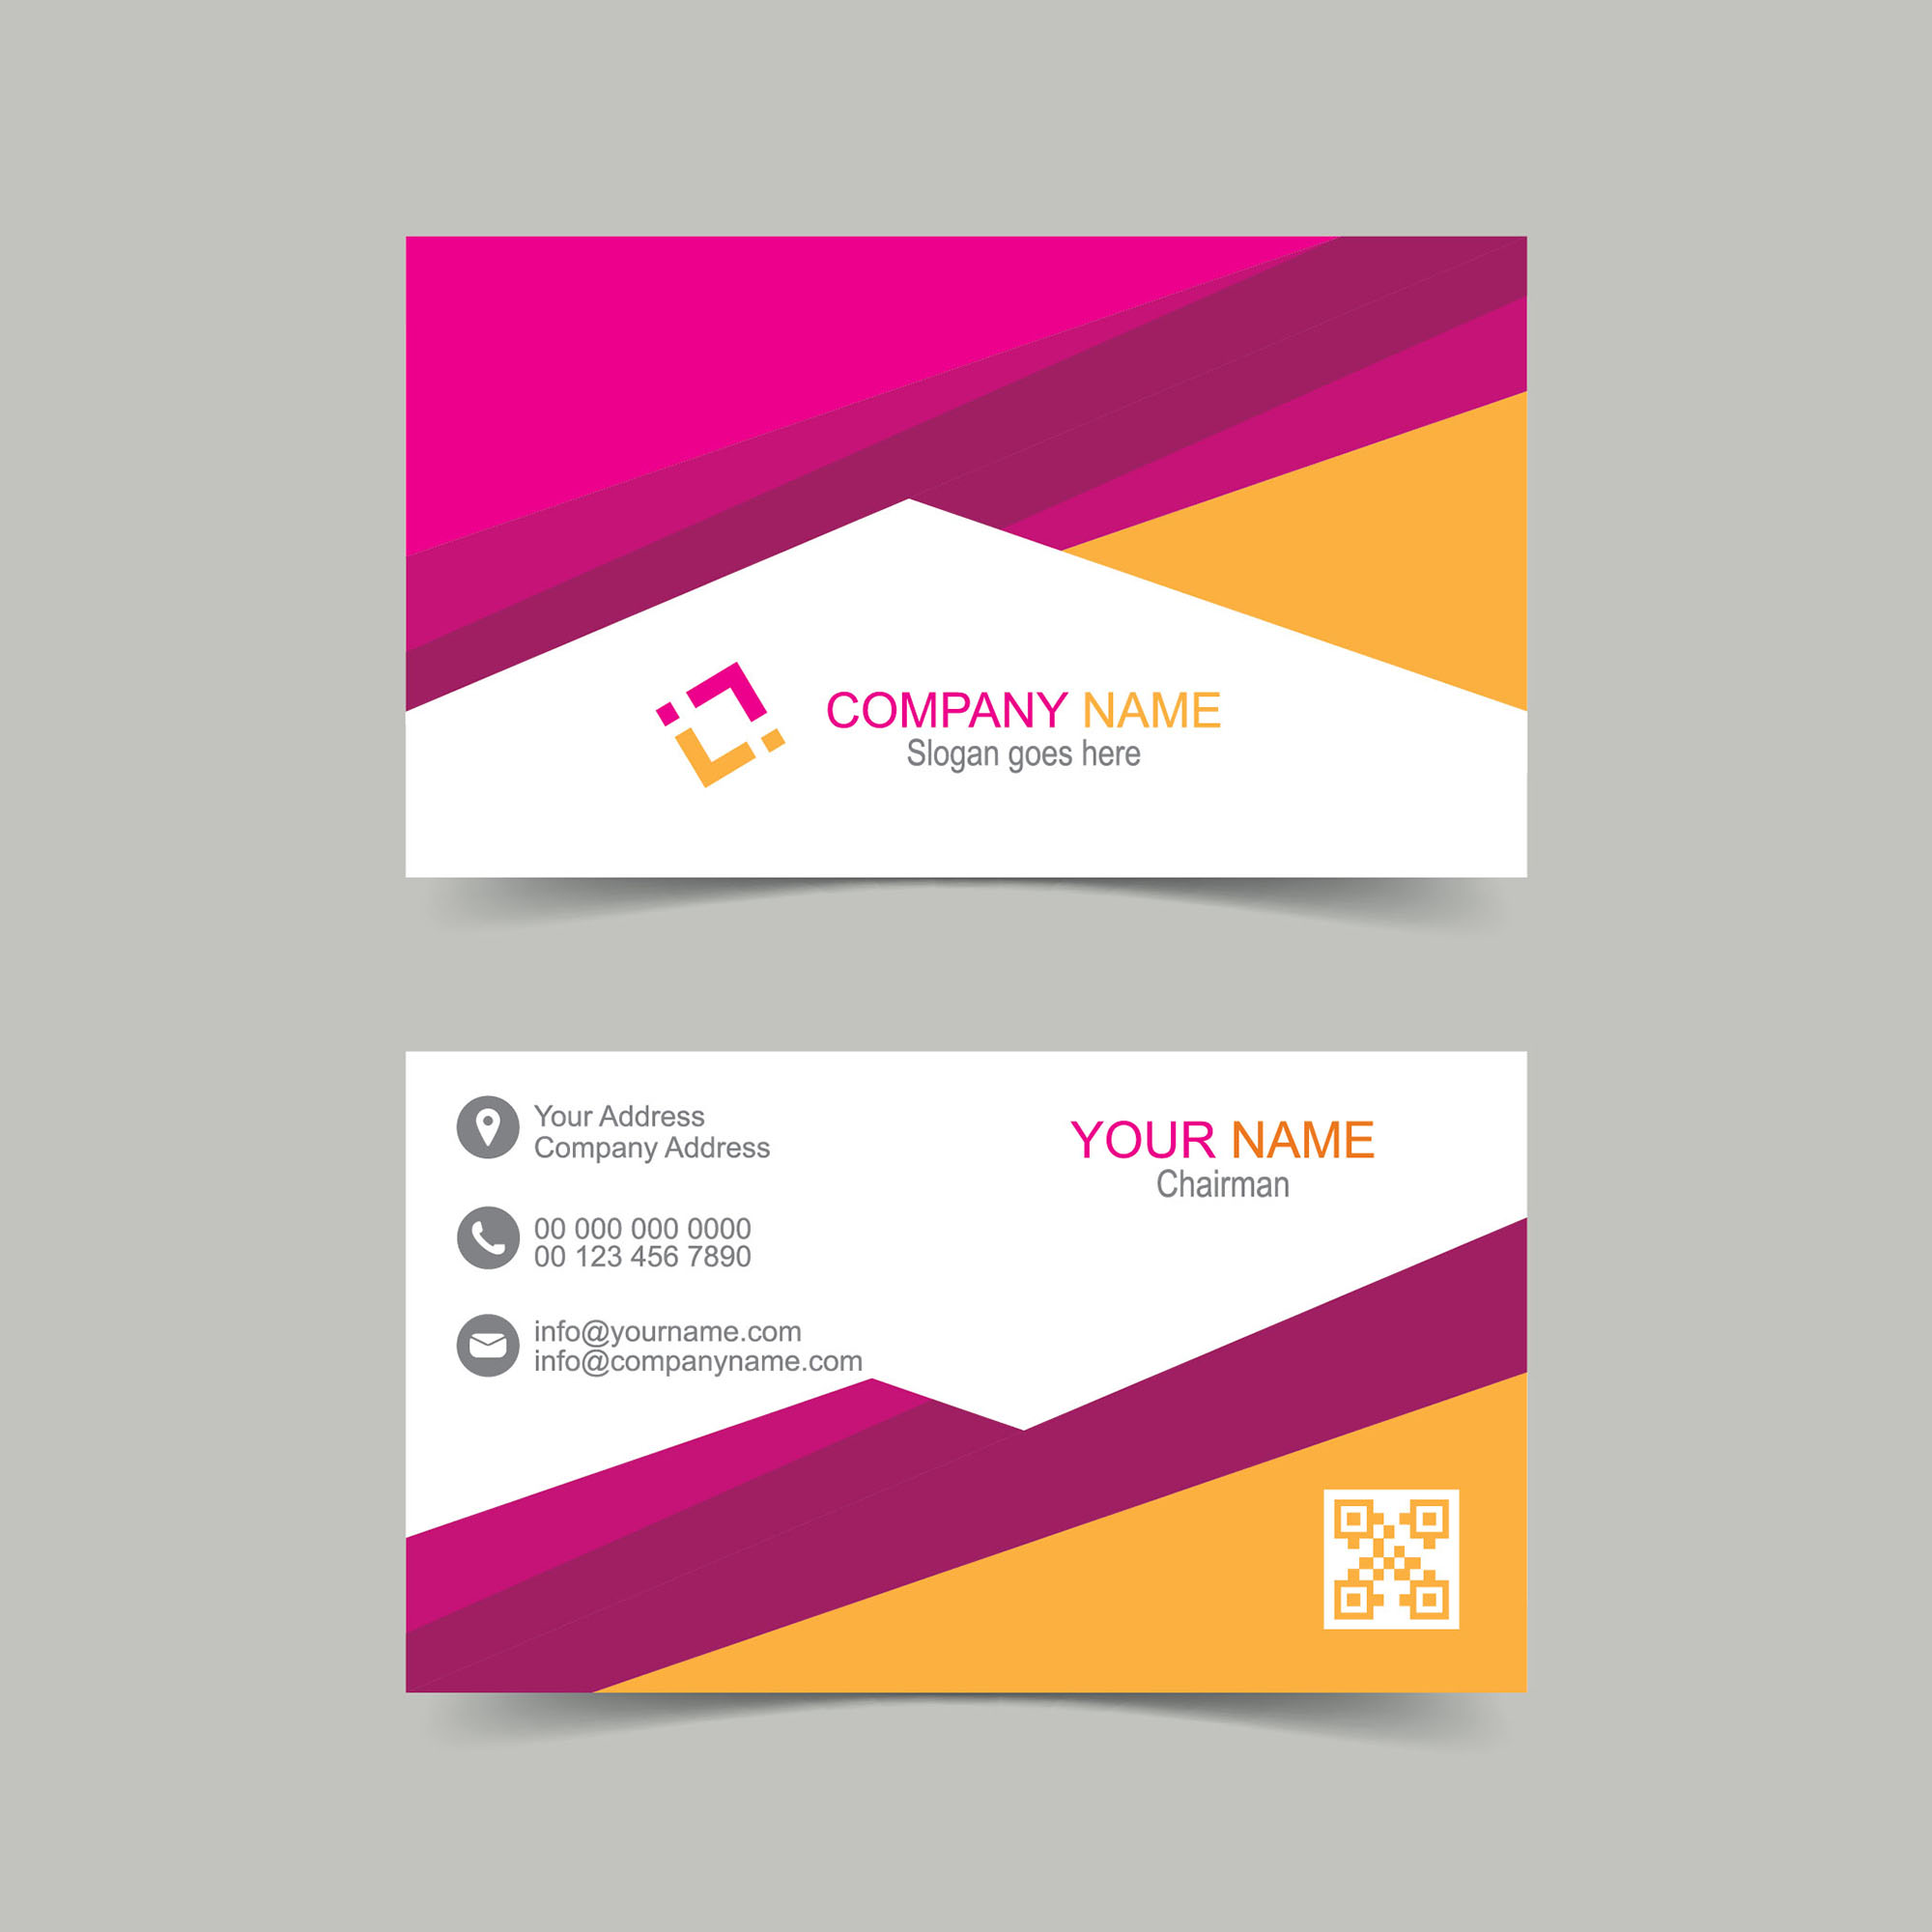 Vector business card design free download wisxi business card business cards business card design business card template design templates accmission